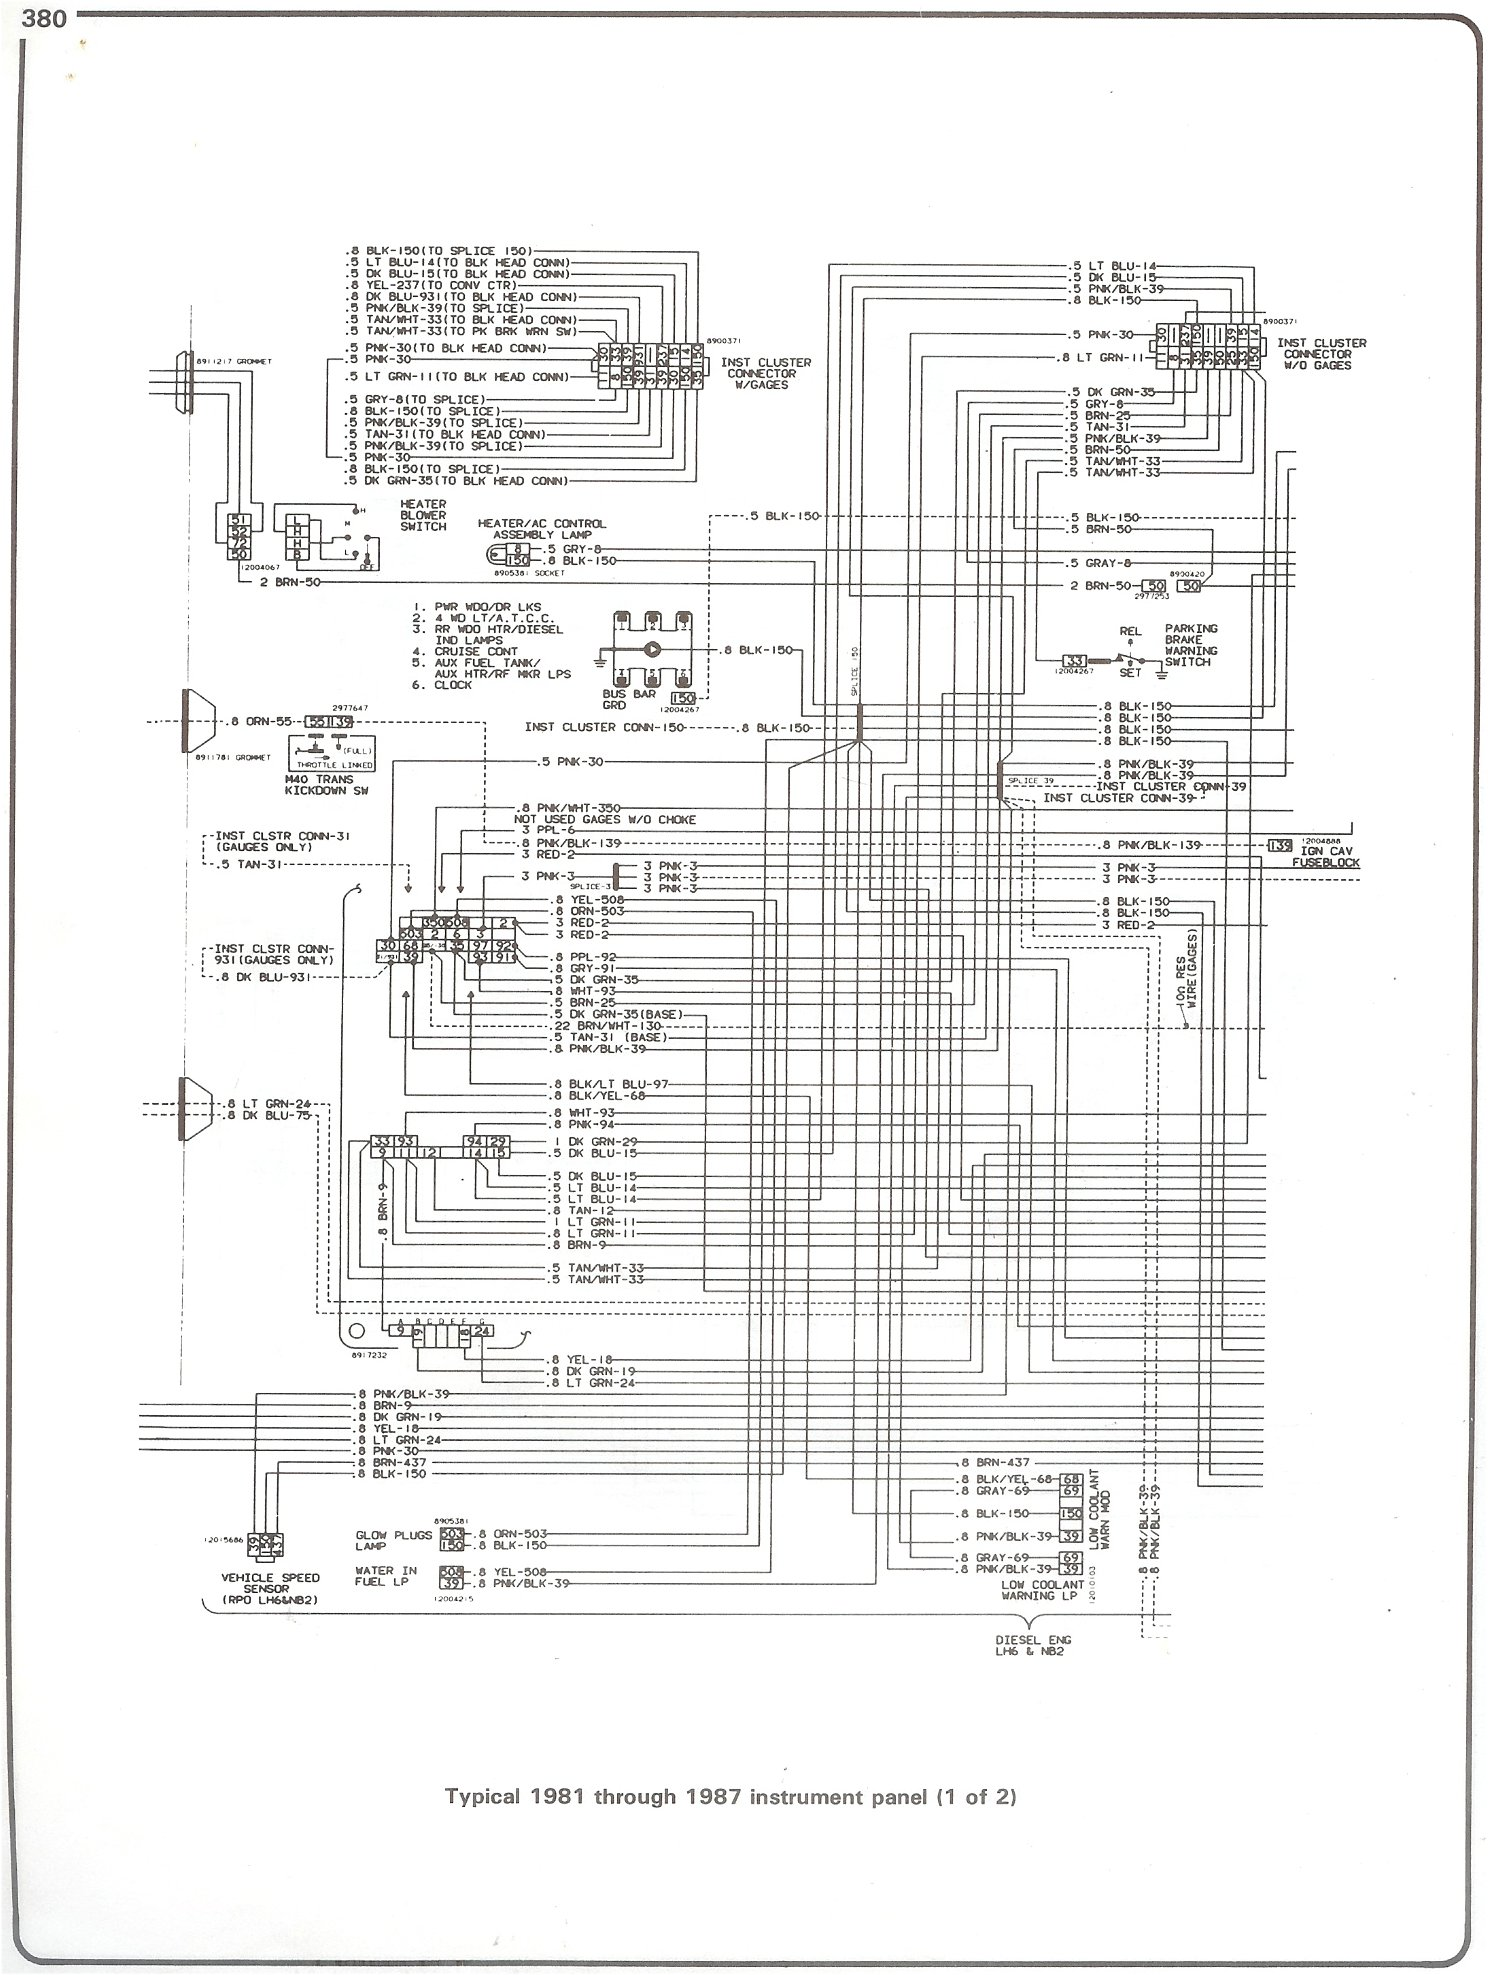 1984 Chevrolet Wiring Diagram - P9.schwabenschamanen.de • on gmc truck electrical wiring diagrams, 1984 chevy ac electric diagrams, gmc truck fuse diagrams, 1984 gmc heater wiring diagram, 2010 gmc light diagrams, 1984 gmc wiring diagram light, 2001 gmc sierra wiring diagrams,